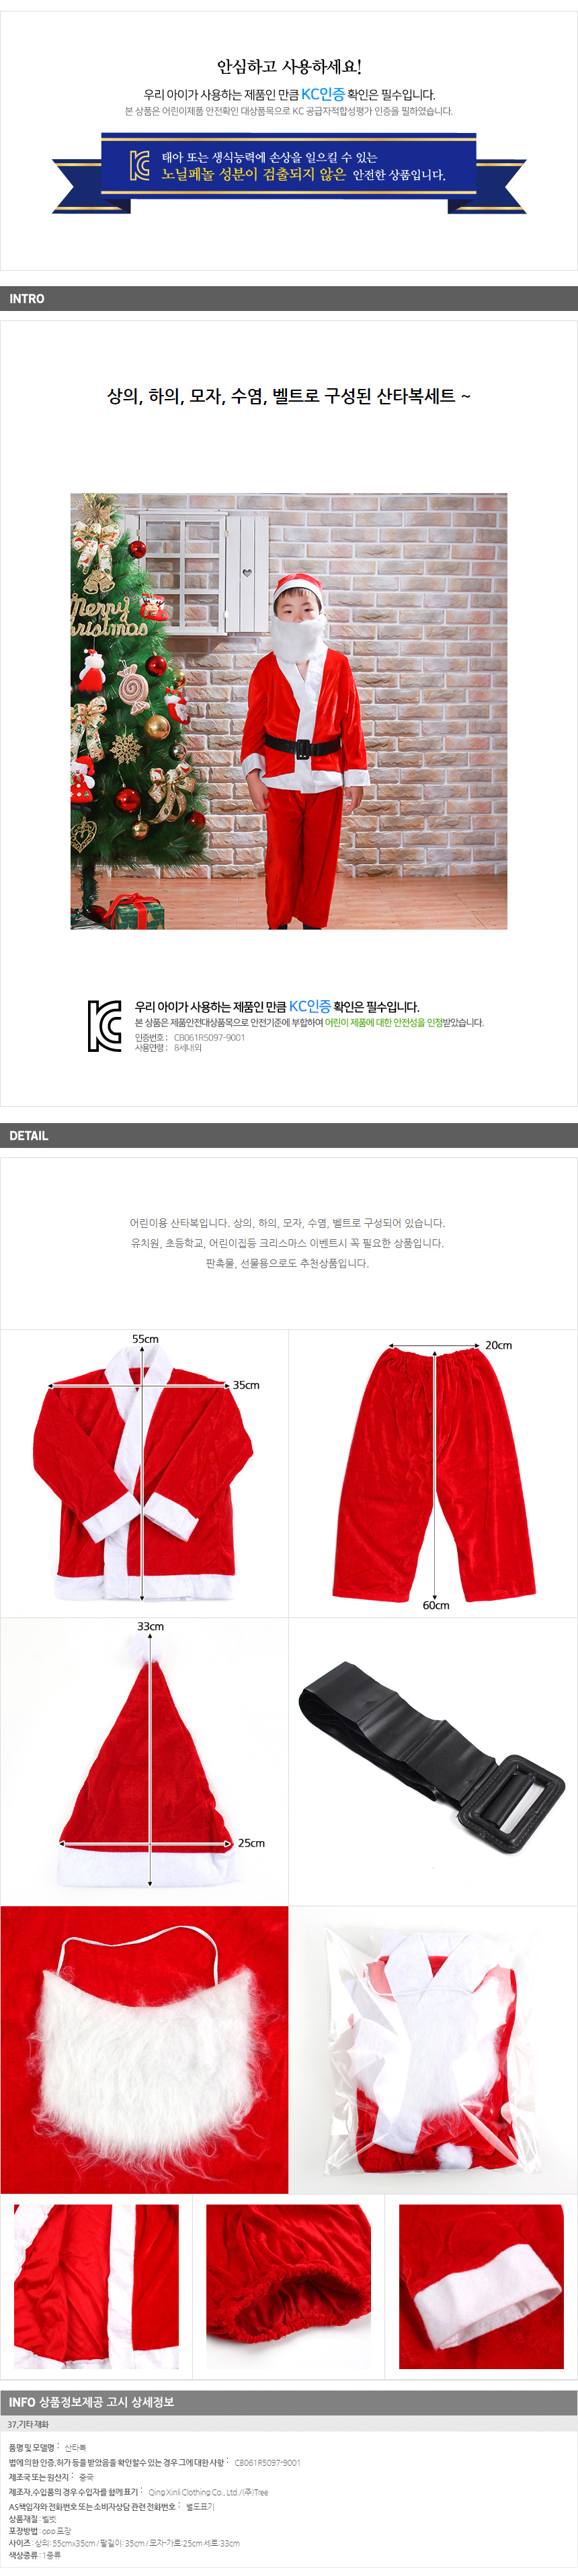 [ WINEQOK ] Christmas Goods / High-grade Santa suit Inside and out